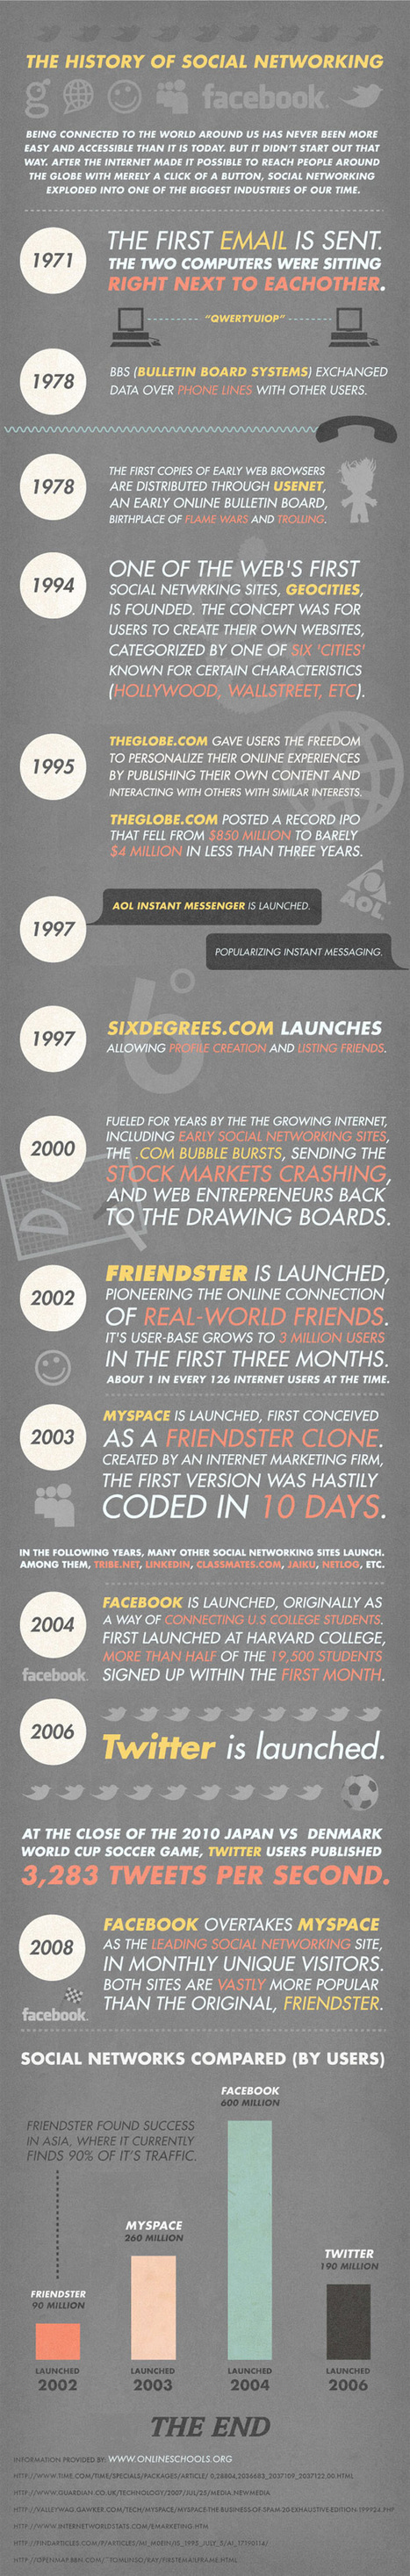 What Is The History of Social Media? [INFOGRAPHIC] | Era Digital - um olhar ciberantropológico | Scoop.it